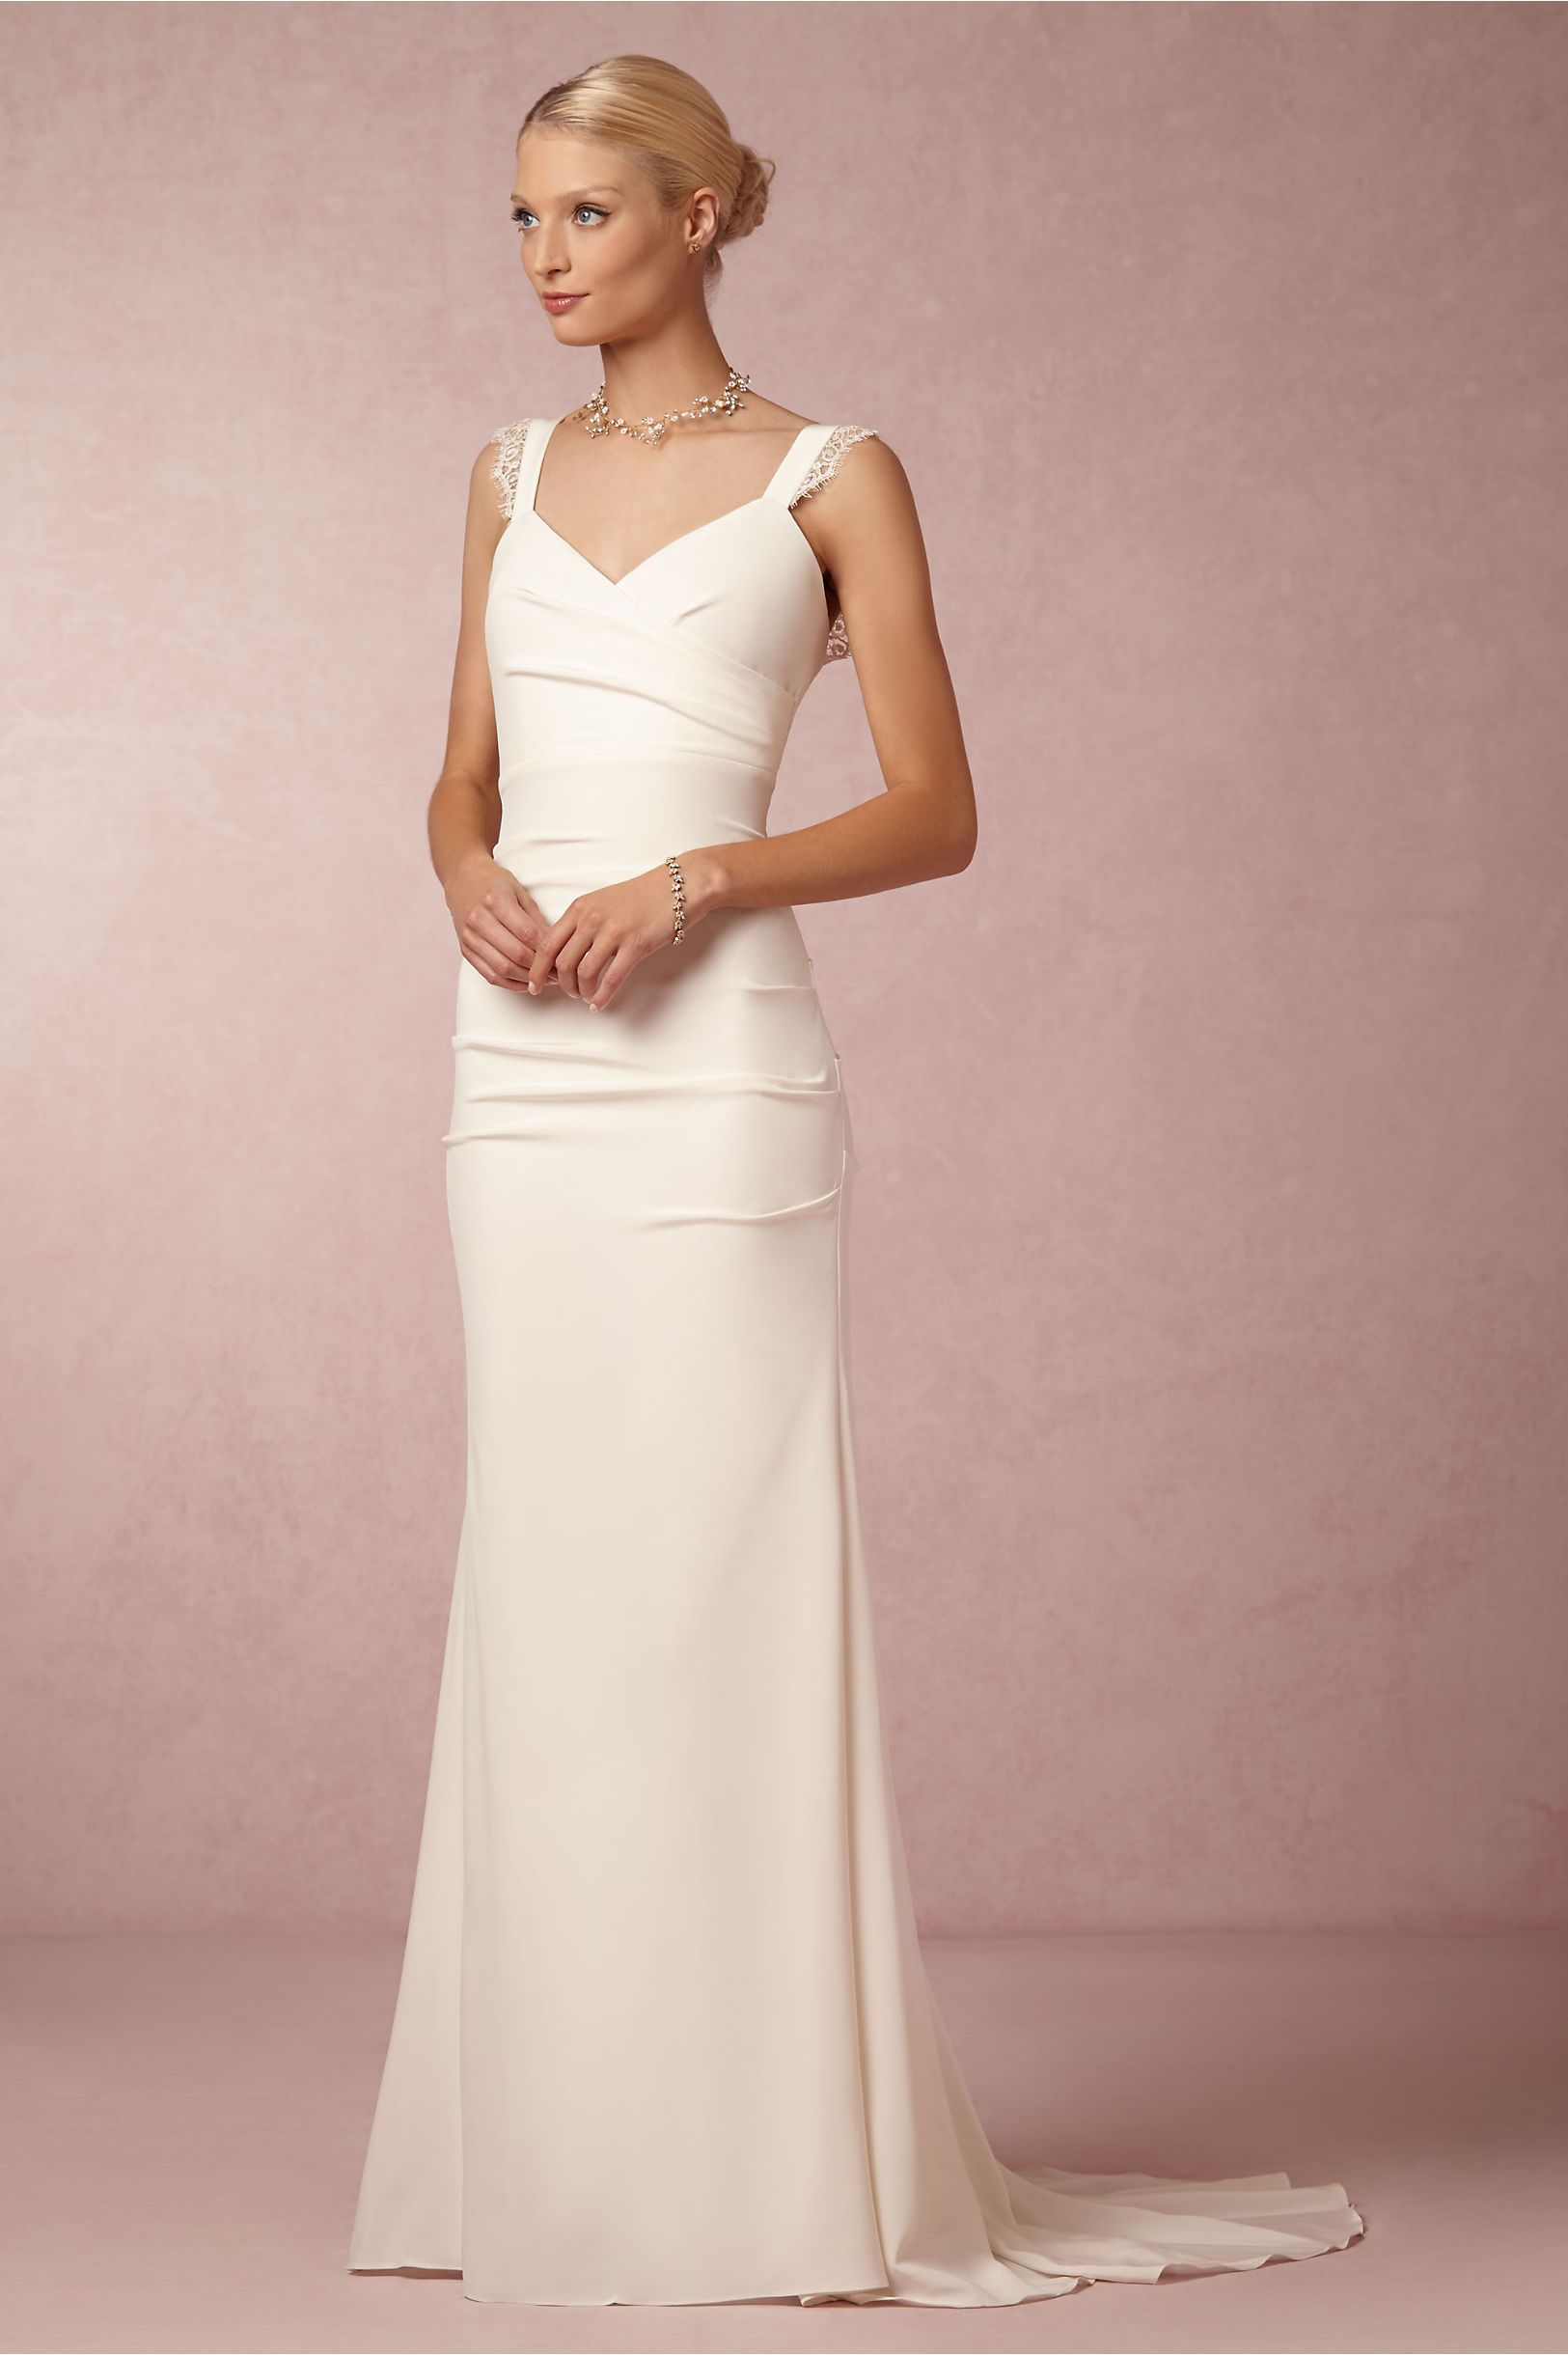 Alexis Gown from BHLDN. $1200. a little pricey but the lines are ...